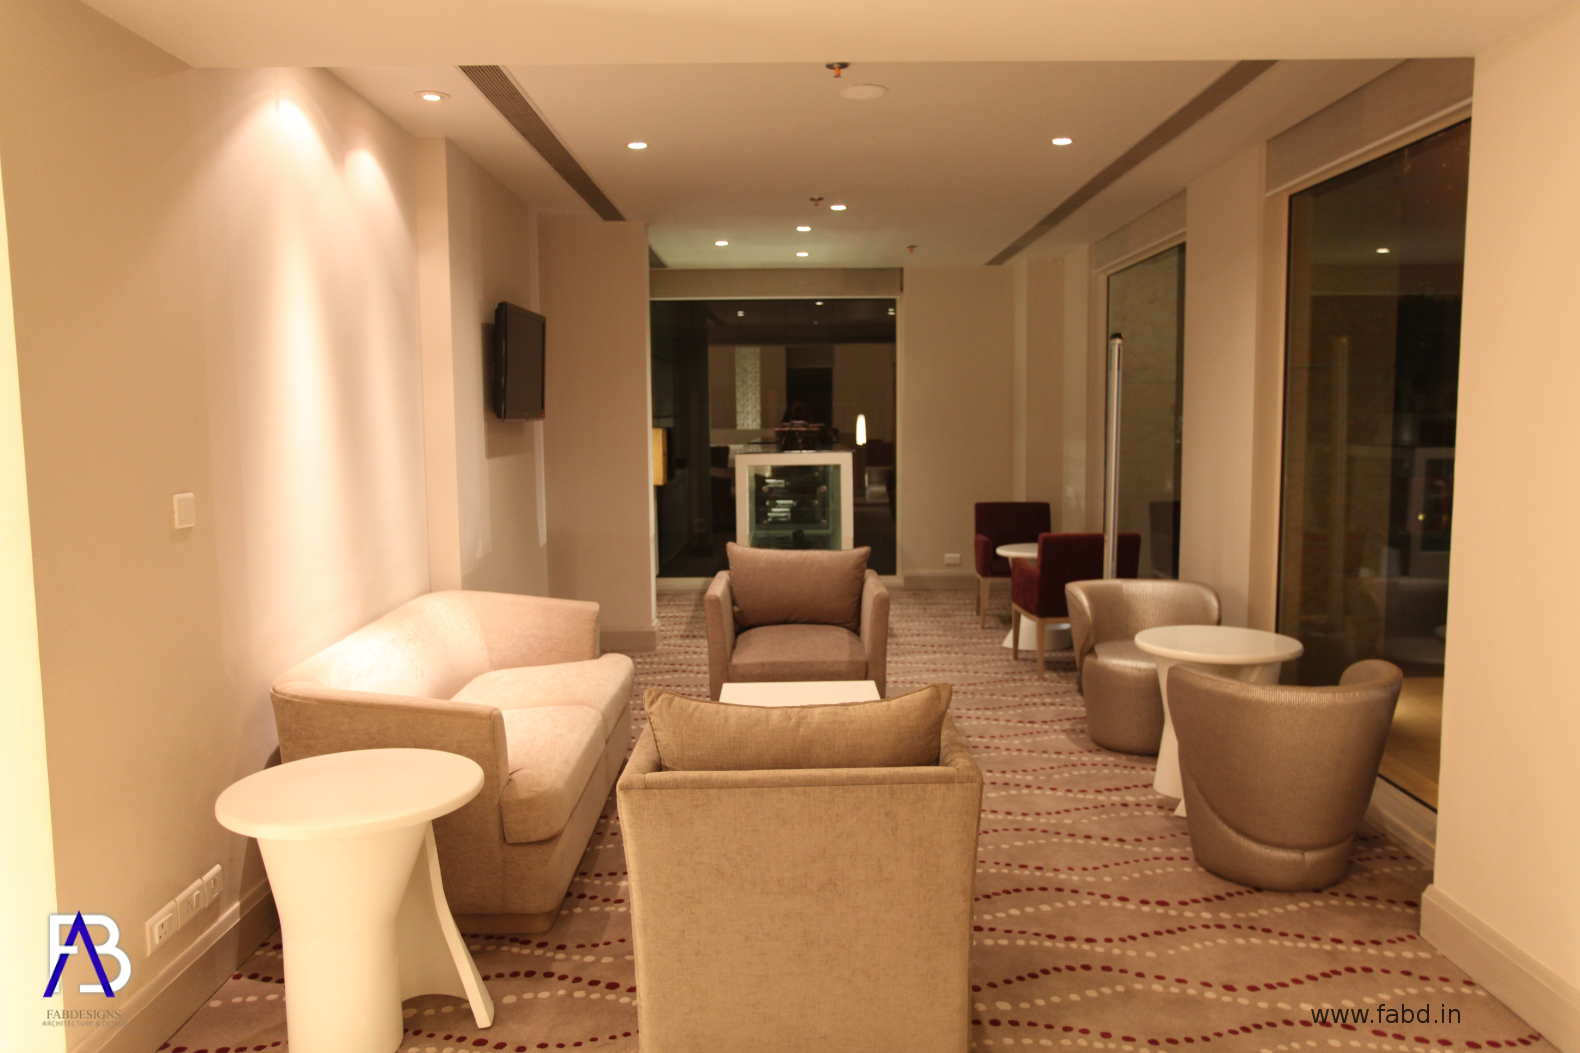 Lounge Area Interior View 01